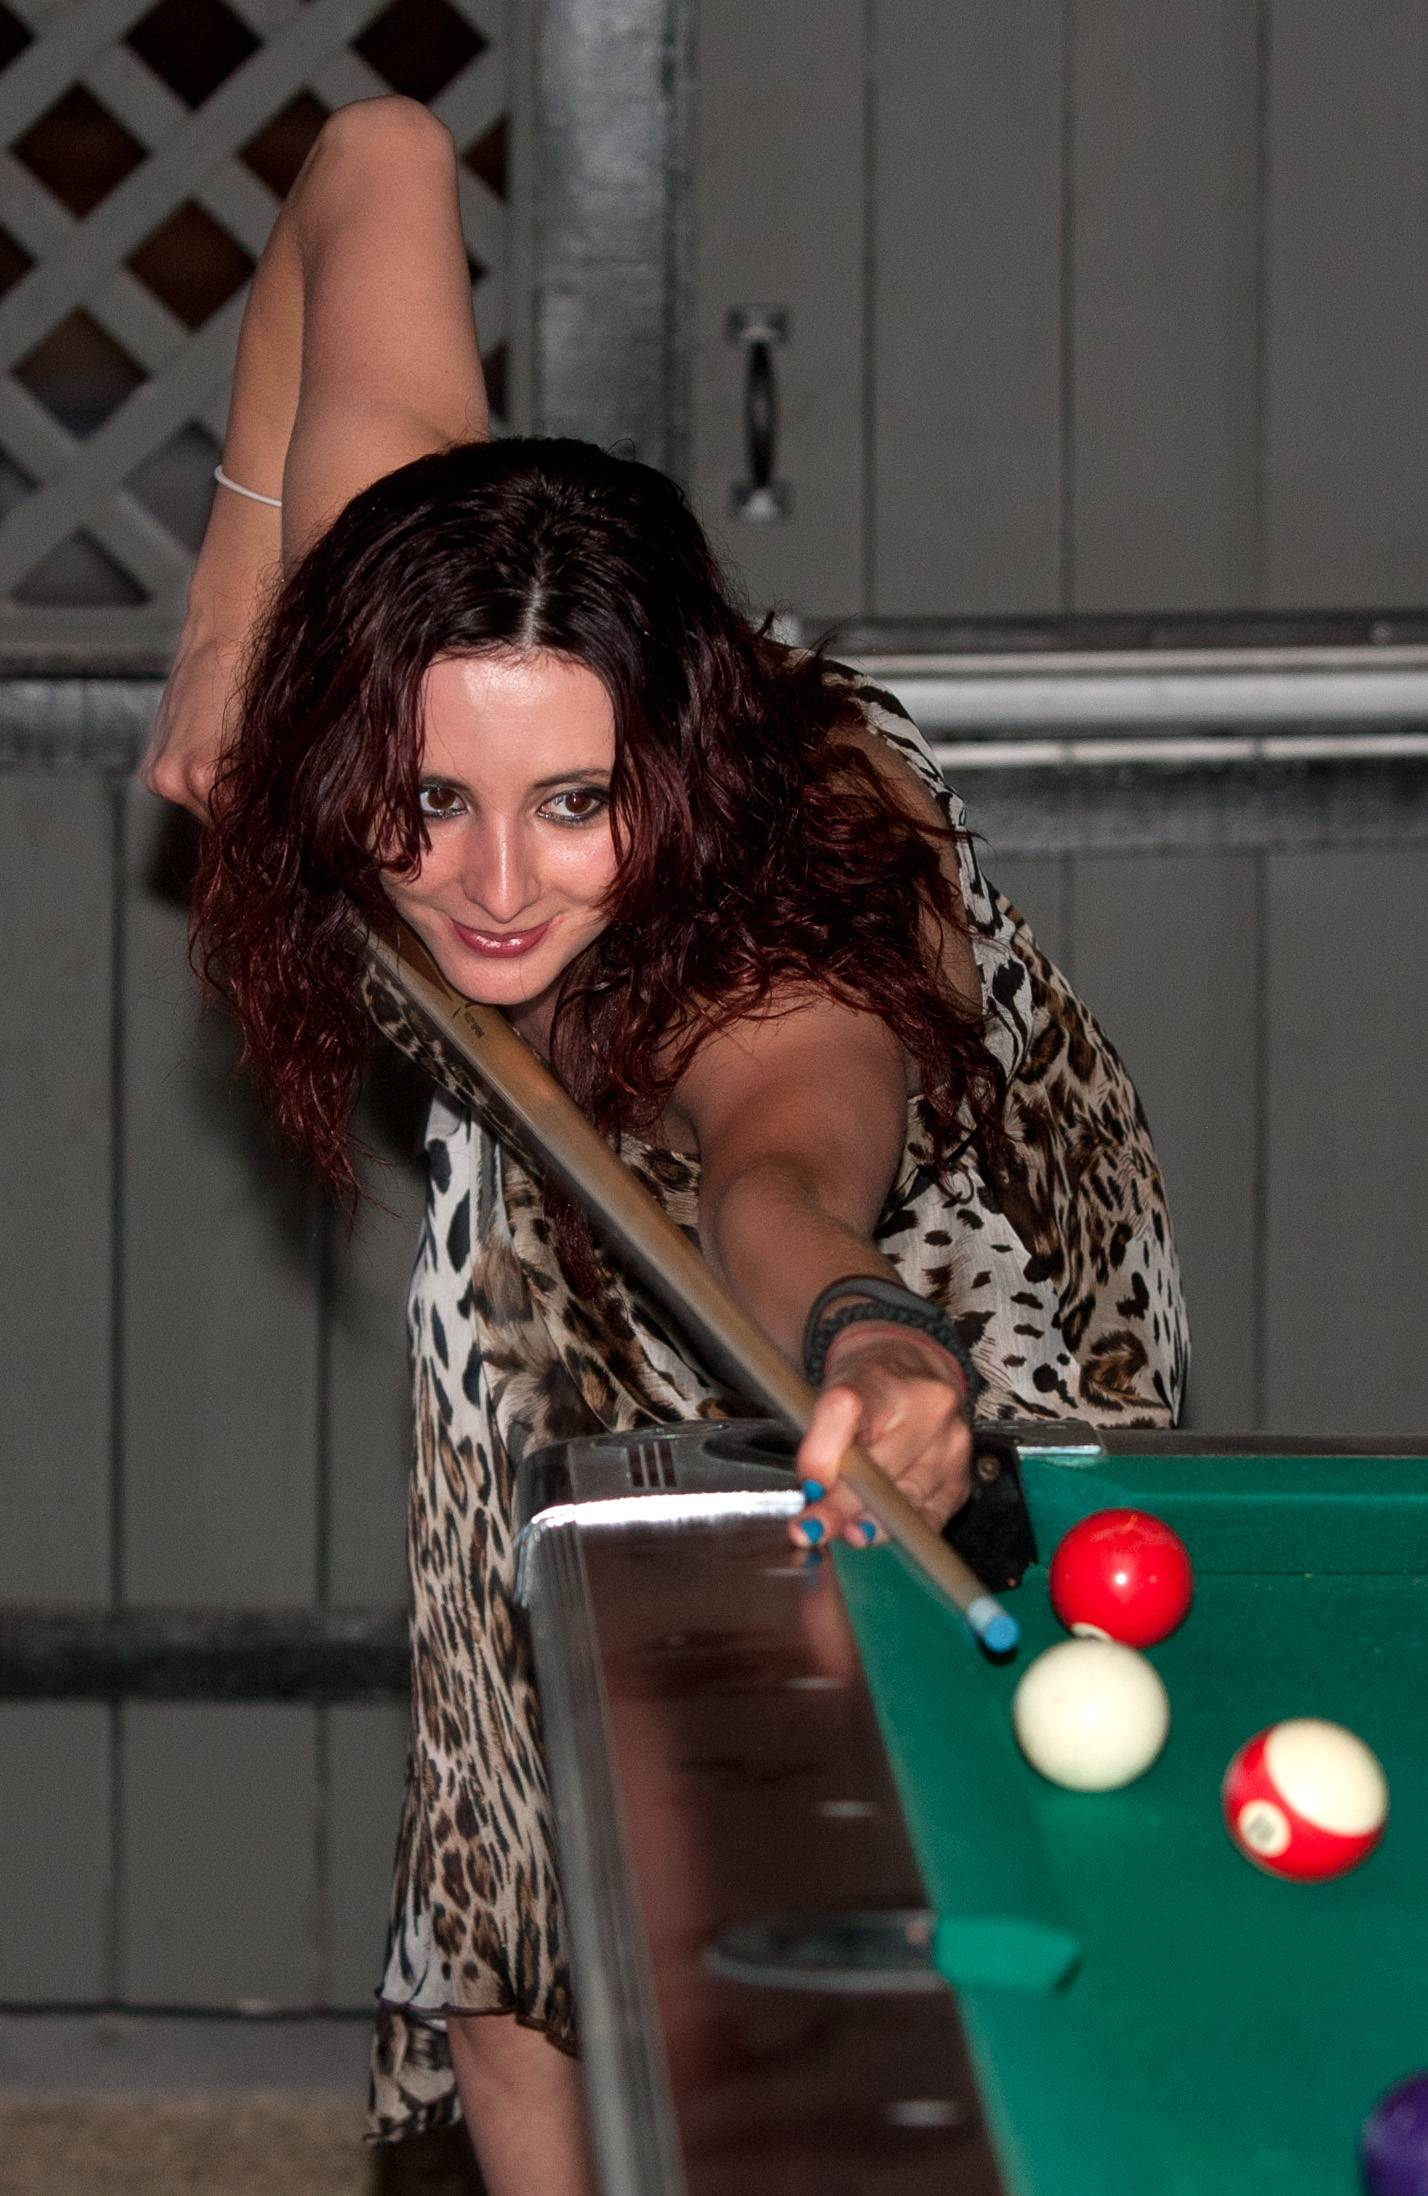 Jelena Lukic of Elk Grove Village enjoys playing pool outdoors at Gnarly J's in Downers Grove.